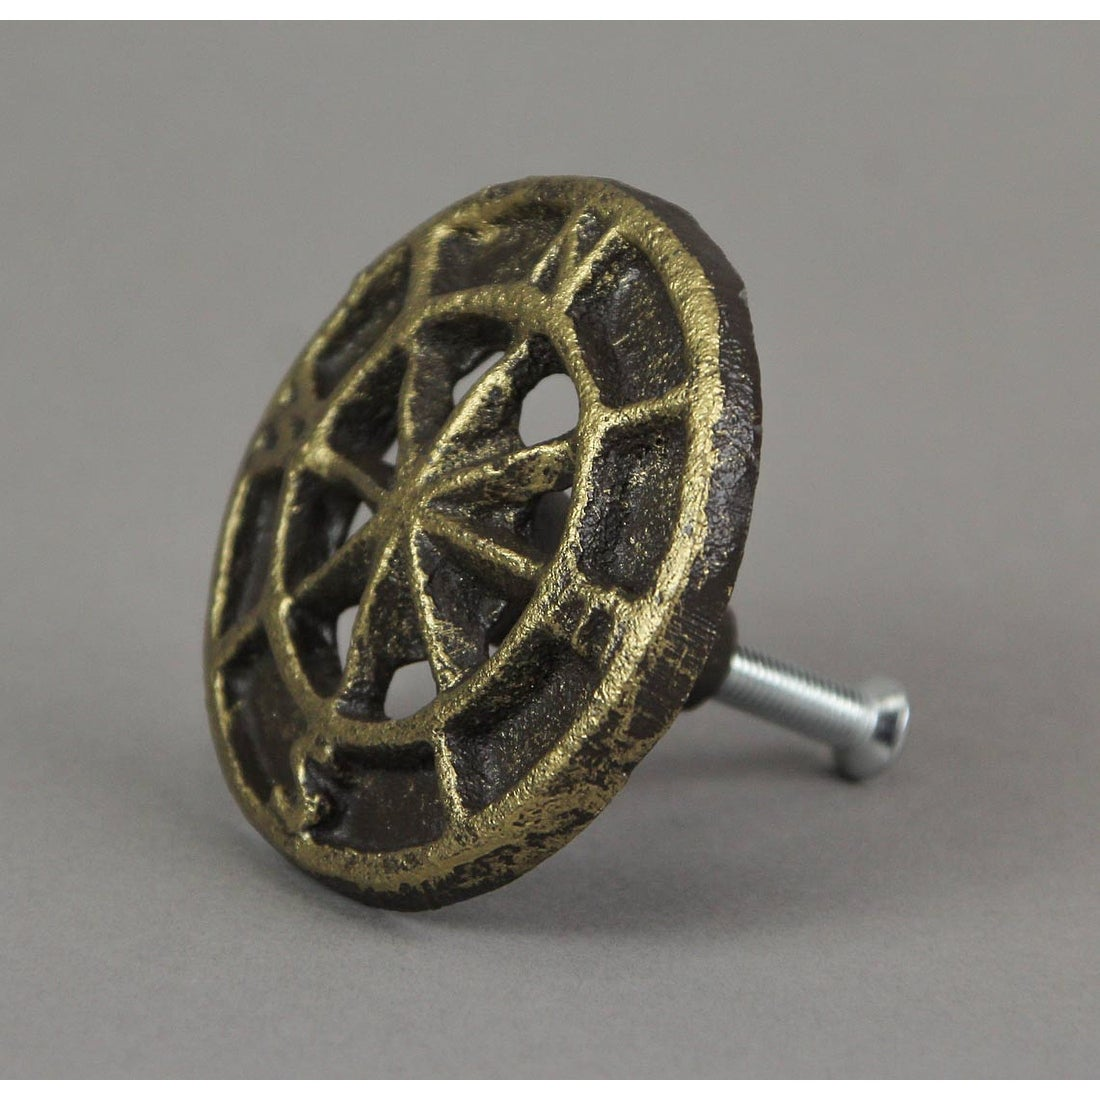 Set Of 12 Cast Iron Nautical Compass Rose Cabinet Hardware Knobs Drawer Pulls Overstock 31033526